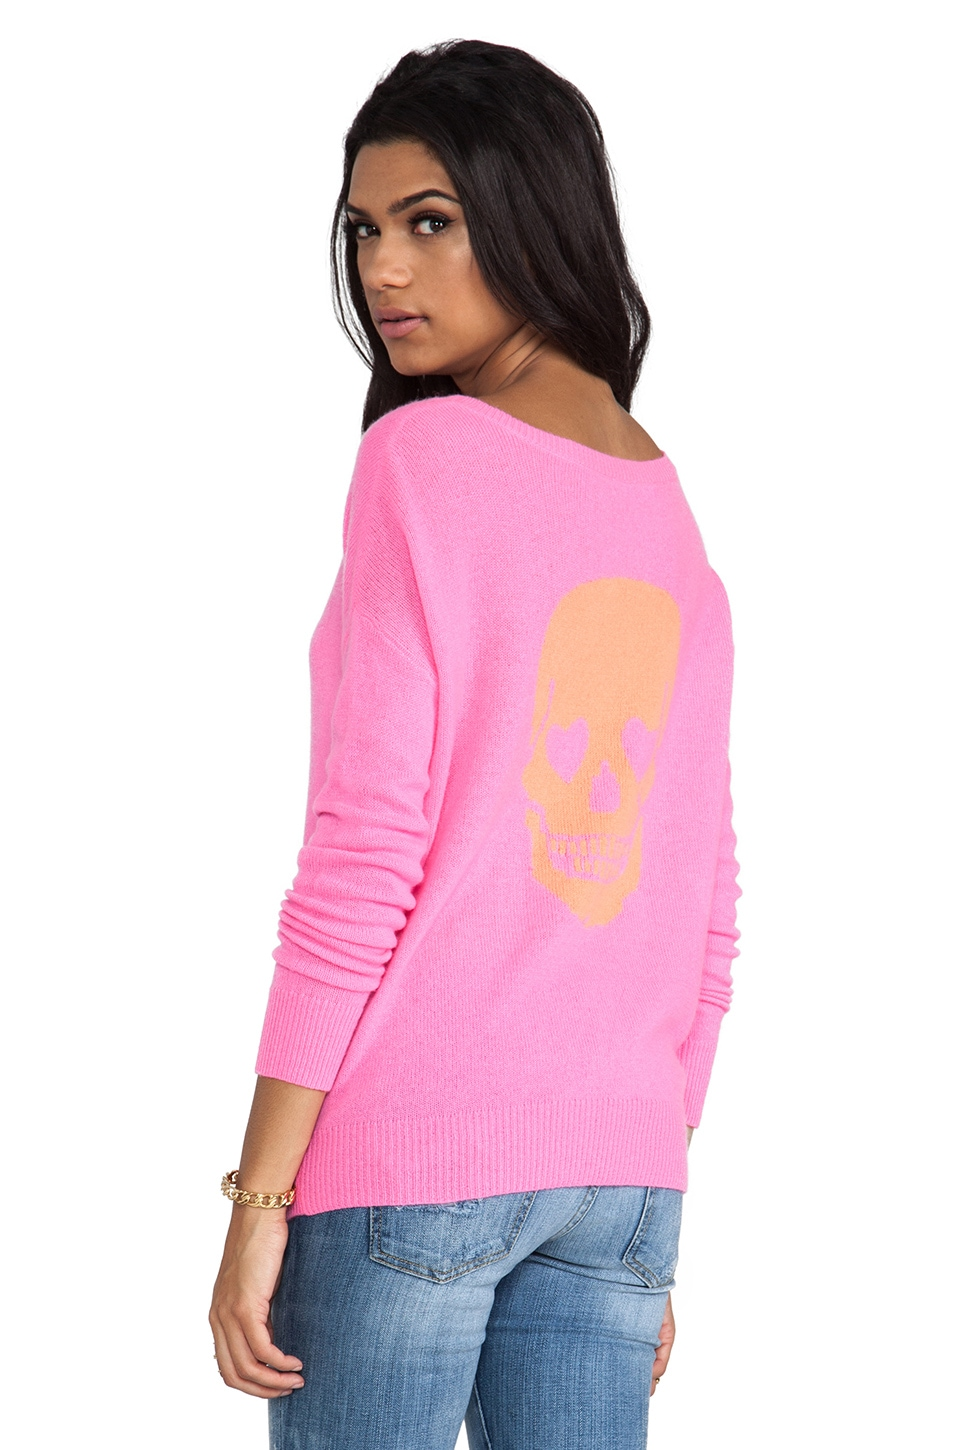 360 Sweater Lovey Cashmere Sweater in Electric Pink & Tangerine Intarsia